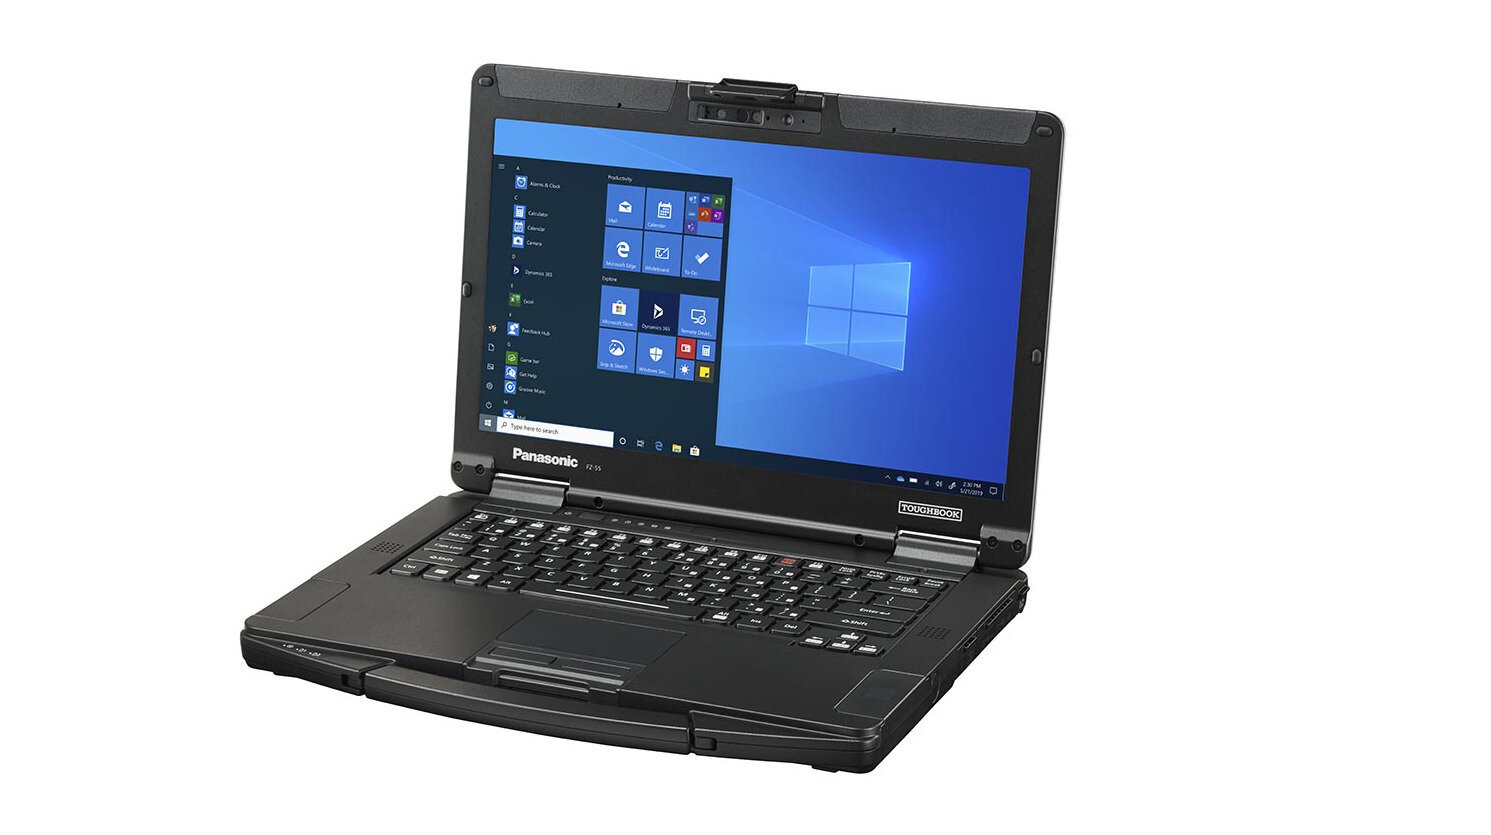 Le portable semi-durci TOUGHBOOK 55 de Panasonic entre dans la famille « Secured-core » de Microsoft